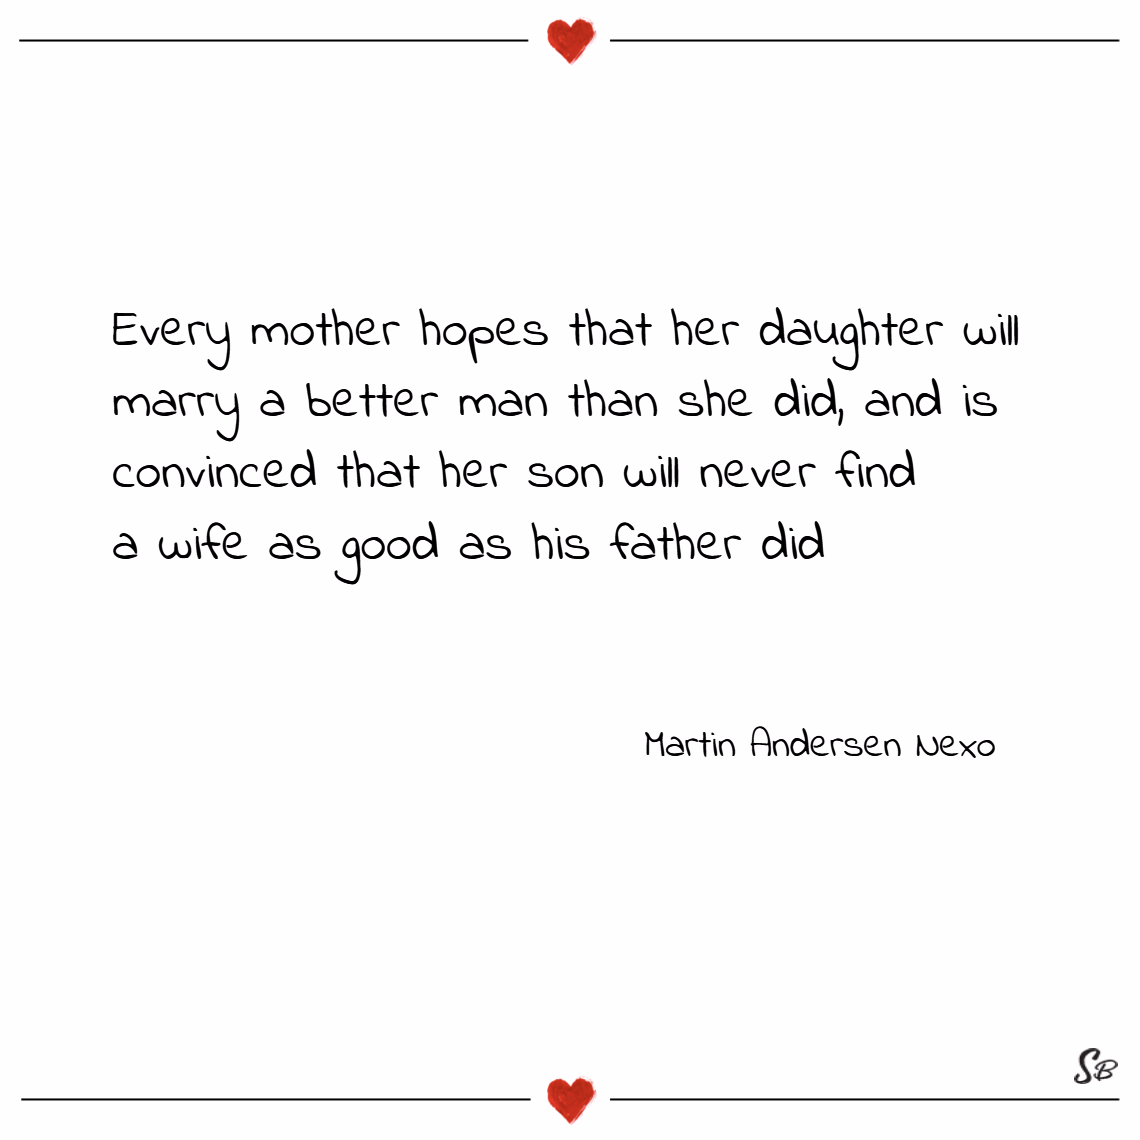 Every mother hopes that her daughter will marry a better man than she did, and is convinced that her son will never find a wife as good as his father did. – martin andersen nexo